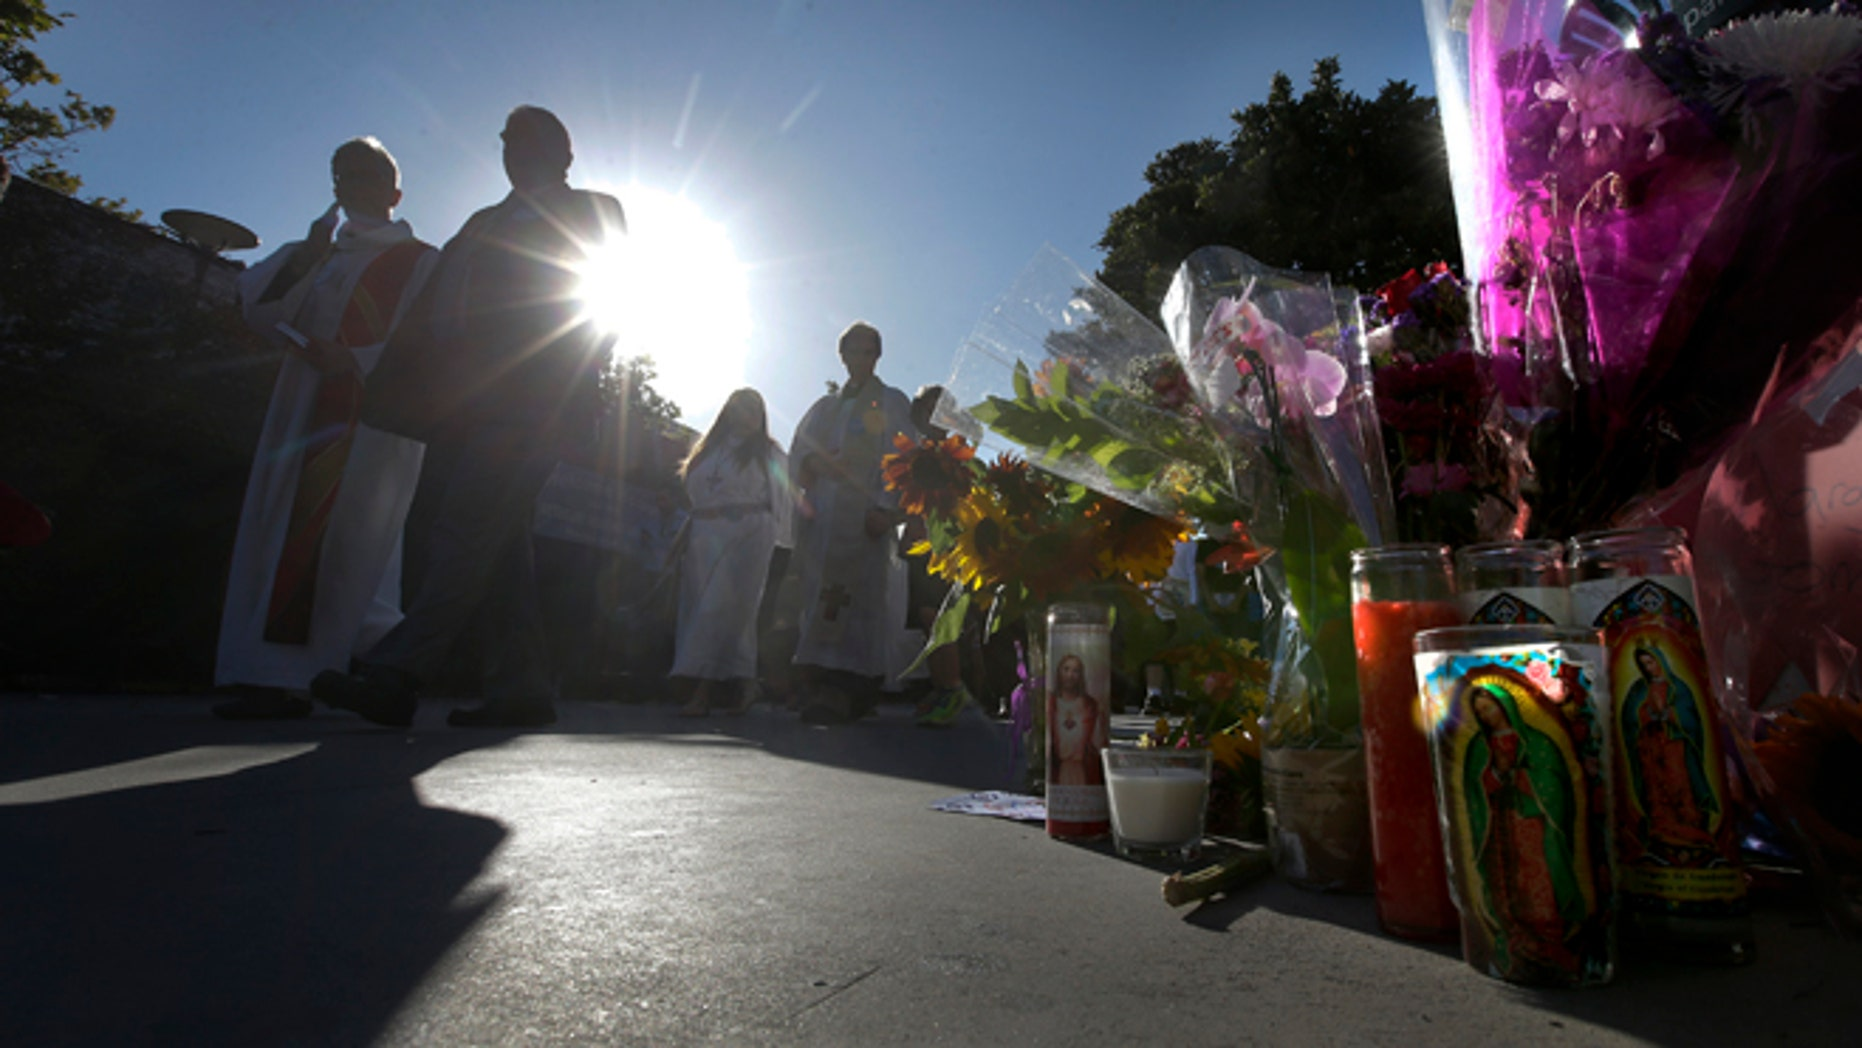 Family and friends march to Santa Monica College Corsair football stadium Monday, June 10, 2013, during a vigil for the five people killed in Friday's shootings in Santa Monica, Calif.  (AP Photo/Chris Carlson)